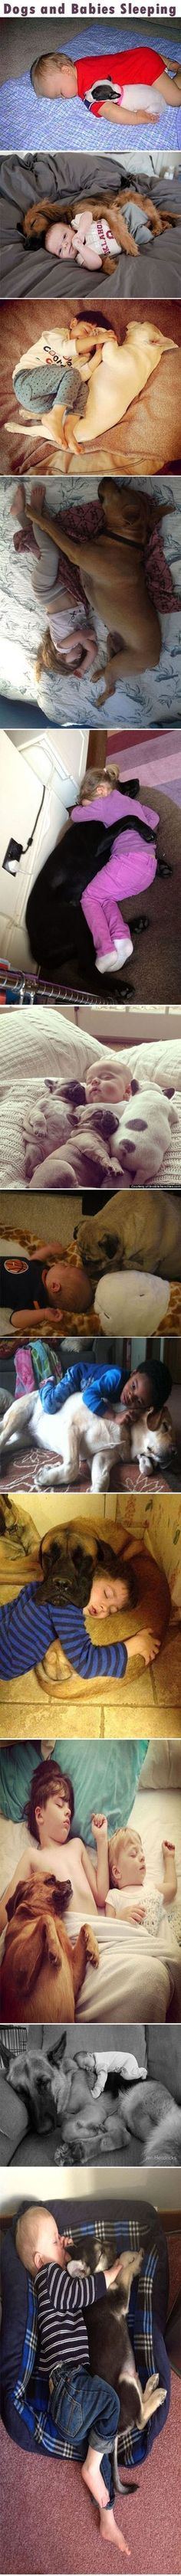 Dogs and Babies Sleeping cute babies animals dogs kids baby adorable dog puppy animal pets funny animals funny pets heart warming funny dogs